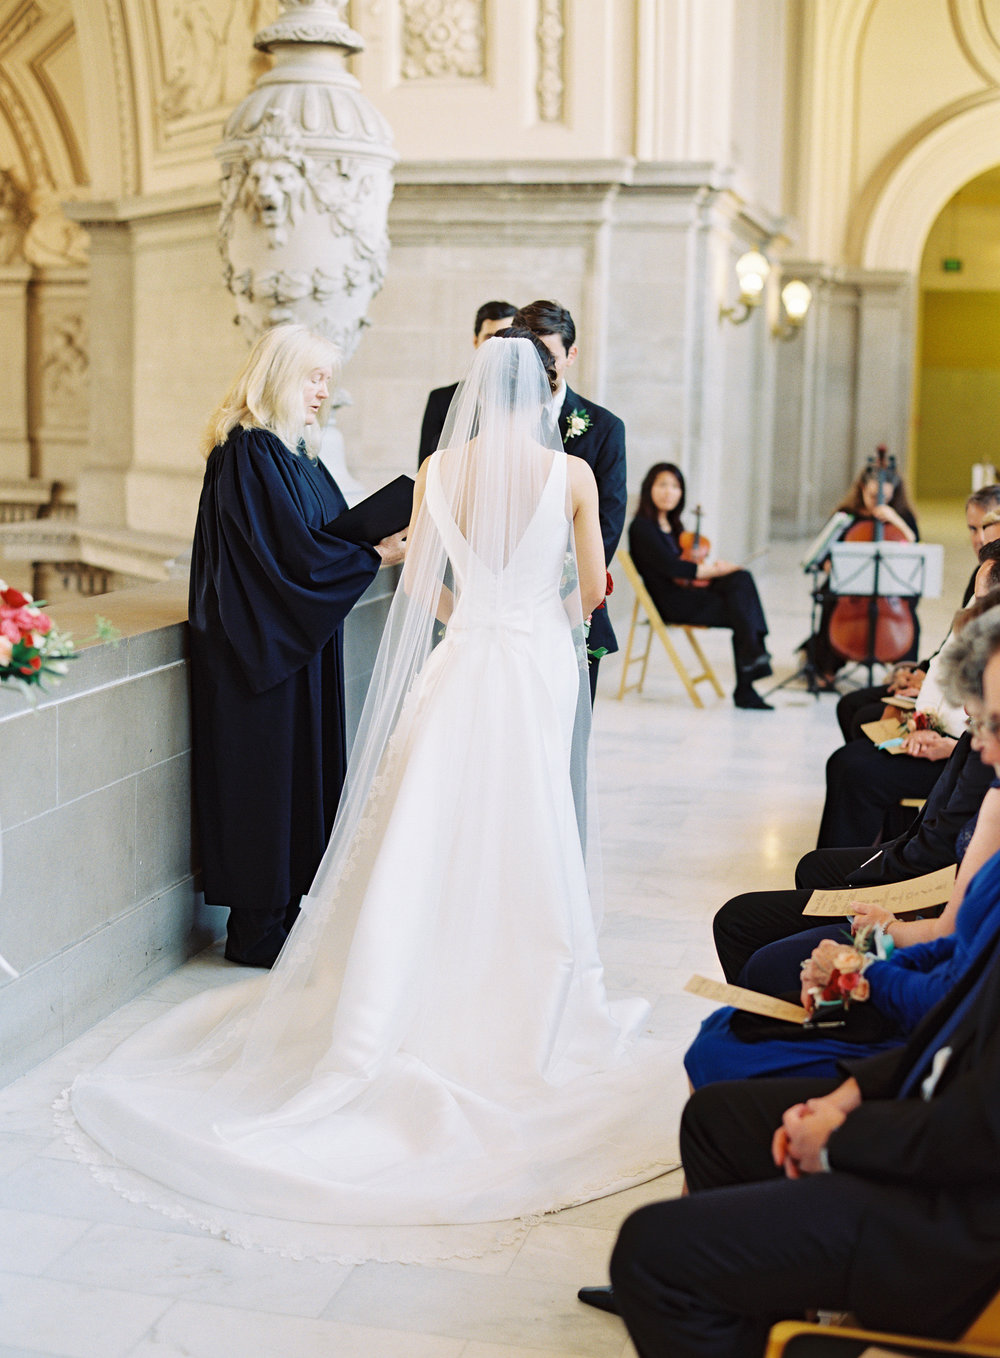 Meghan Mehan Photography - California Wedding Photographer | San Francisco City Hall Wedding 093.jpg